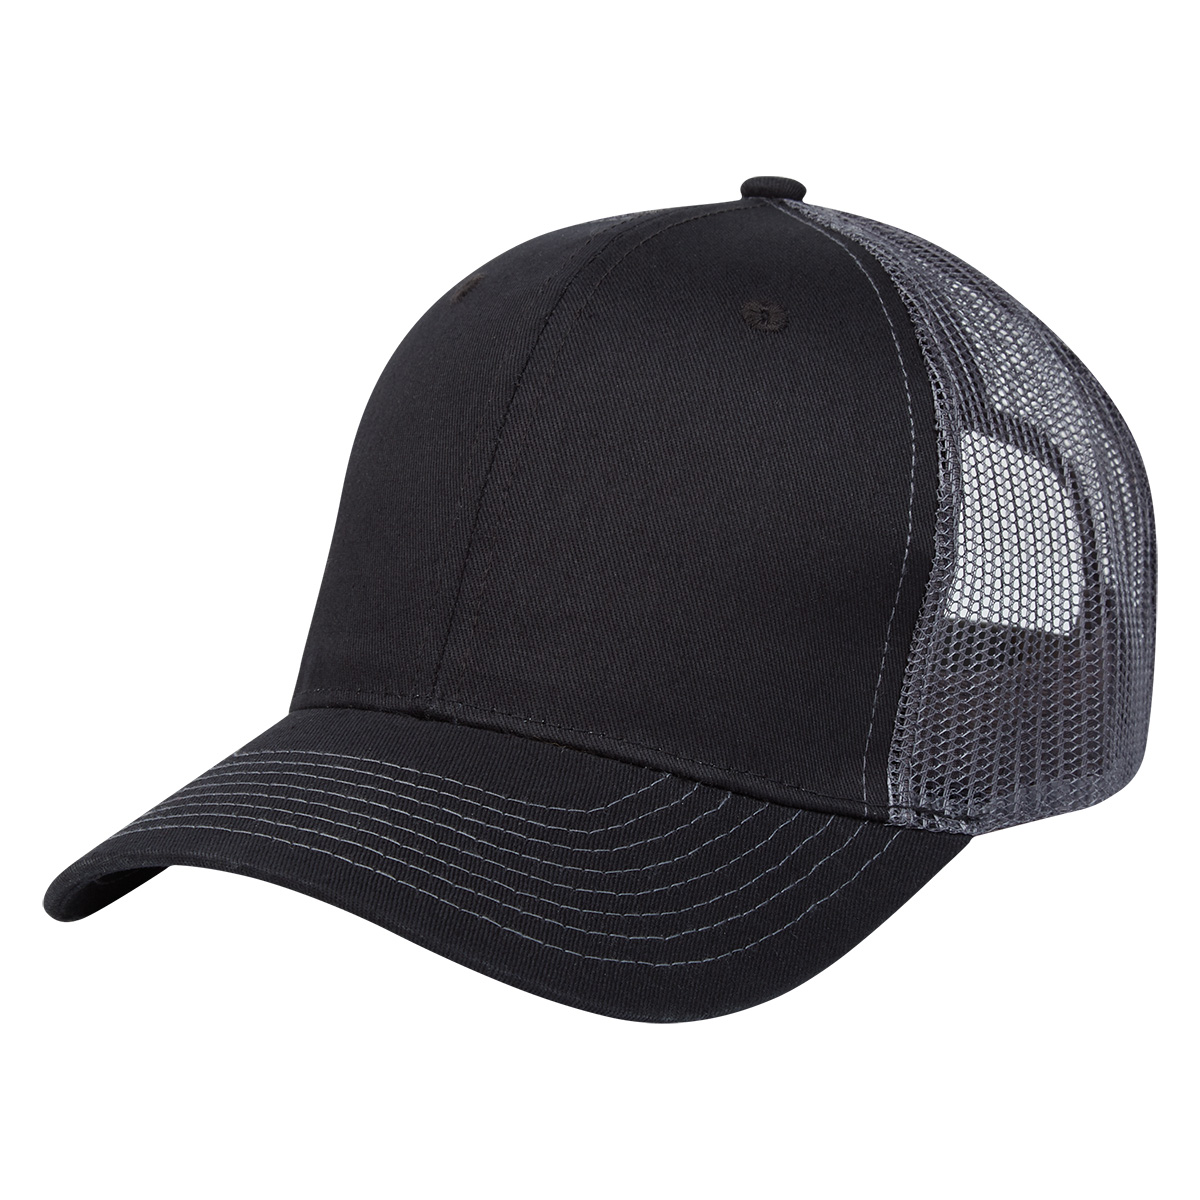 Black with Gray Mesh Cotton Twill Mesh Back Cap